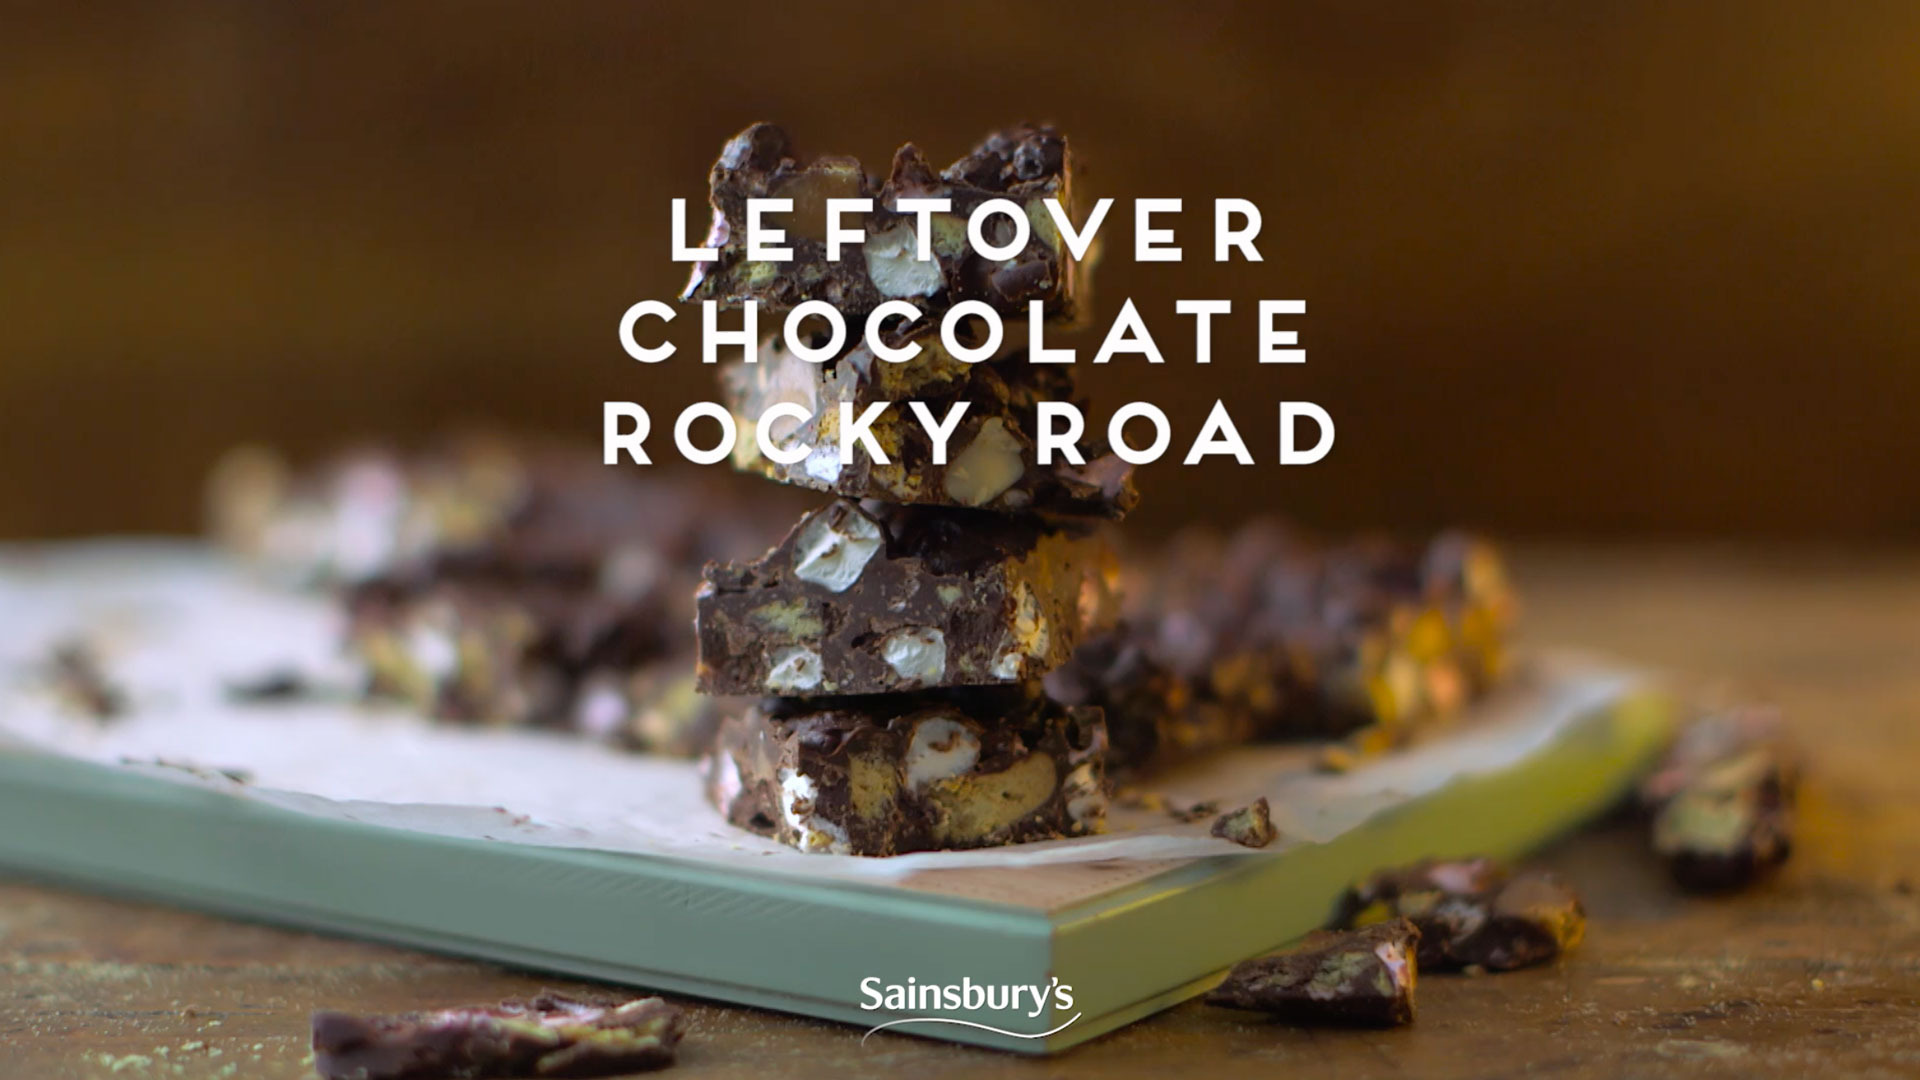 Leftover Chocolate Rocky Road